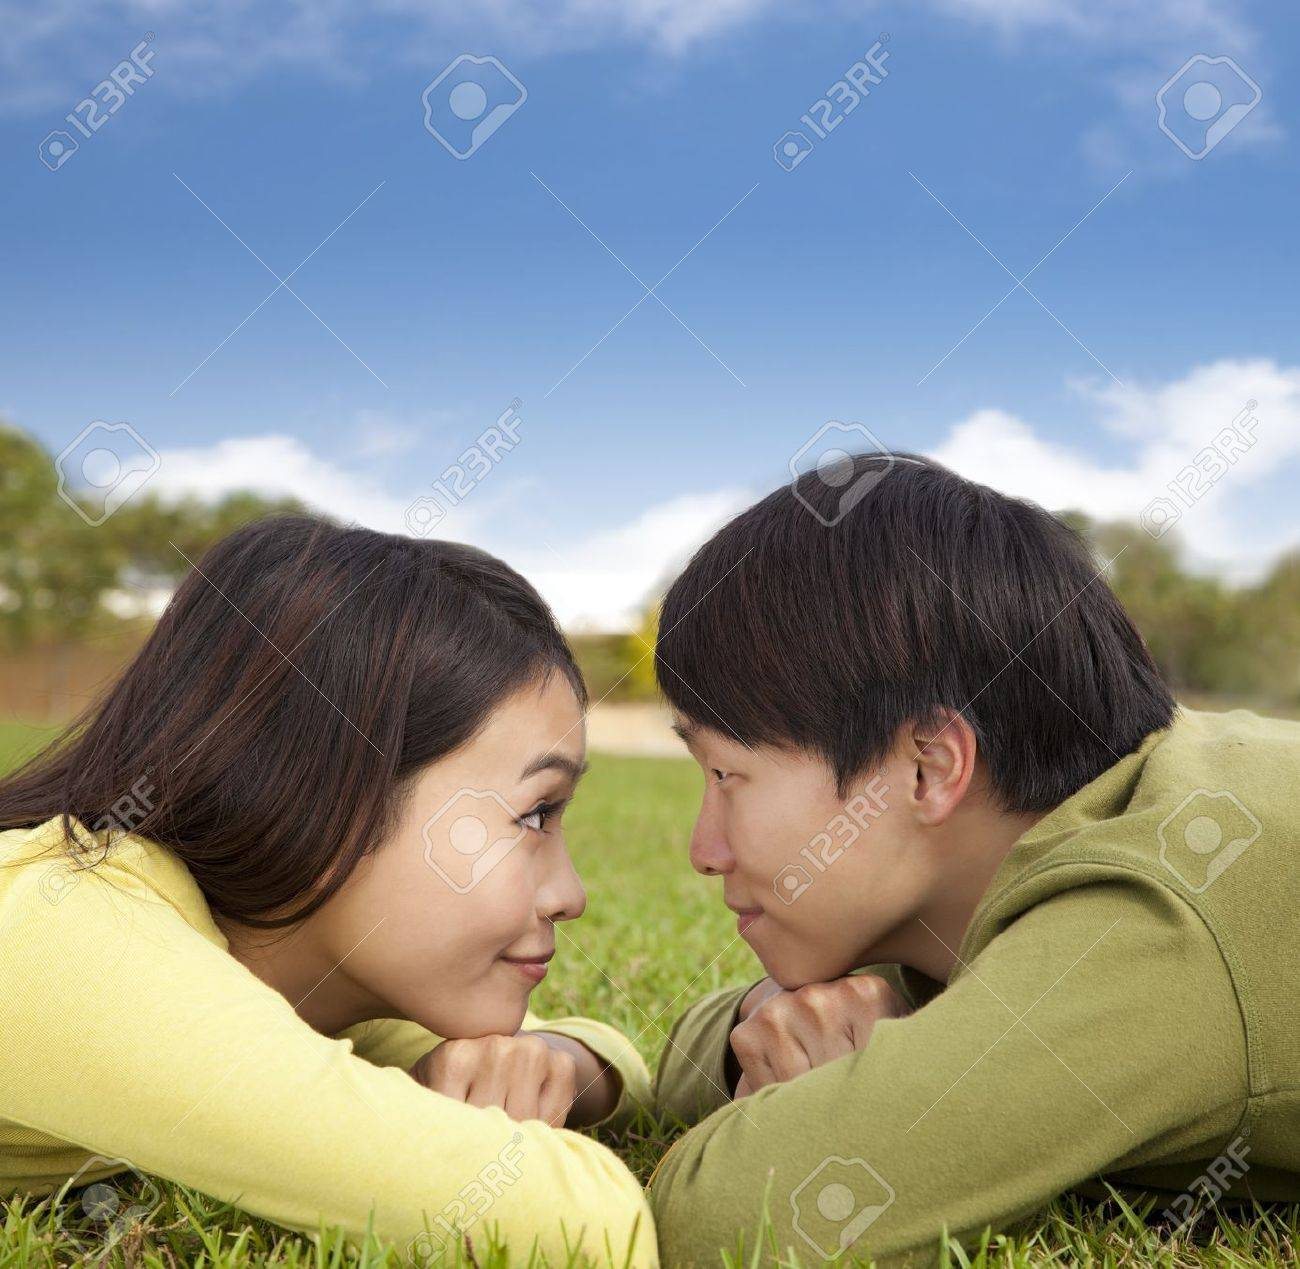 Happy asian couple lying on the grass with cloud background Stock Photo - 11568024